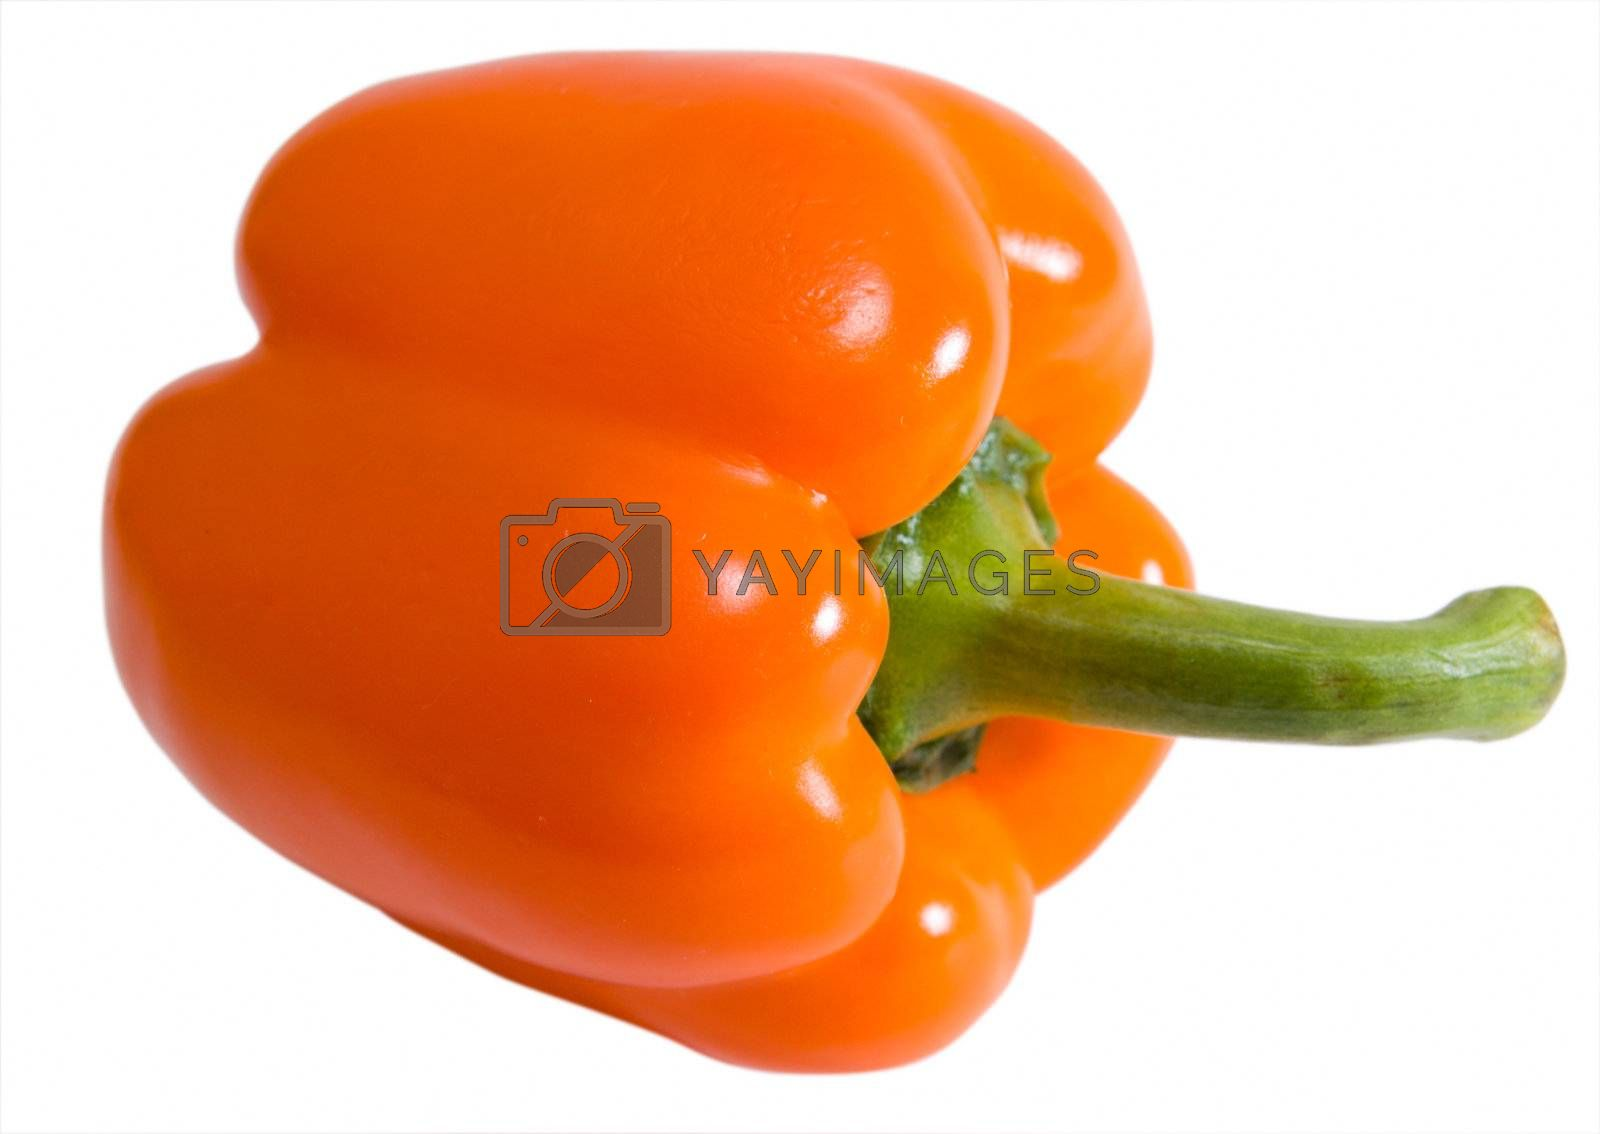 The red pepper isolated on a white background.